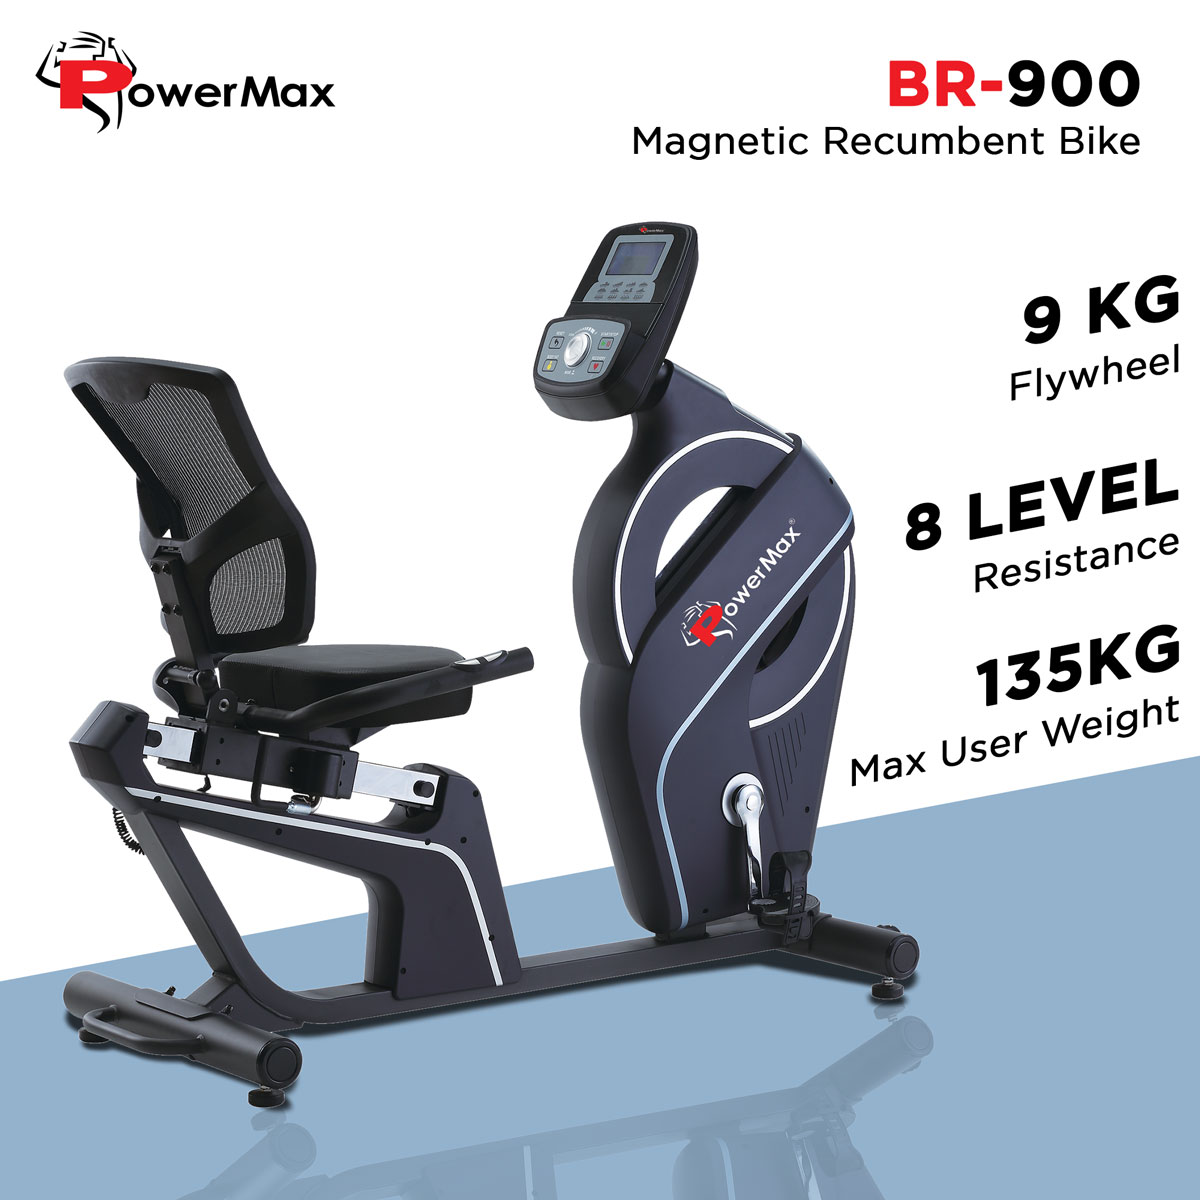 BR-900 Commercial Recumbent Bike